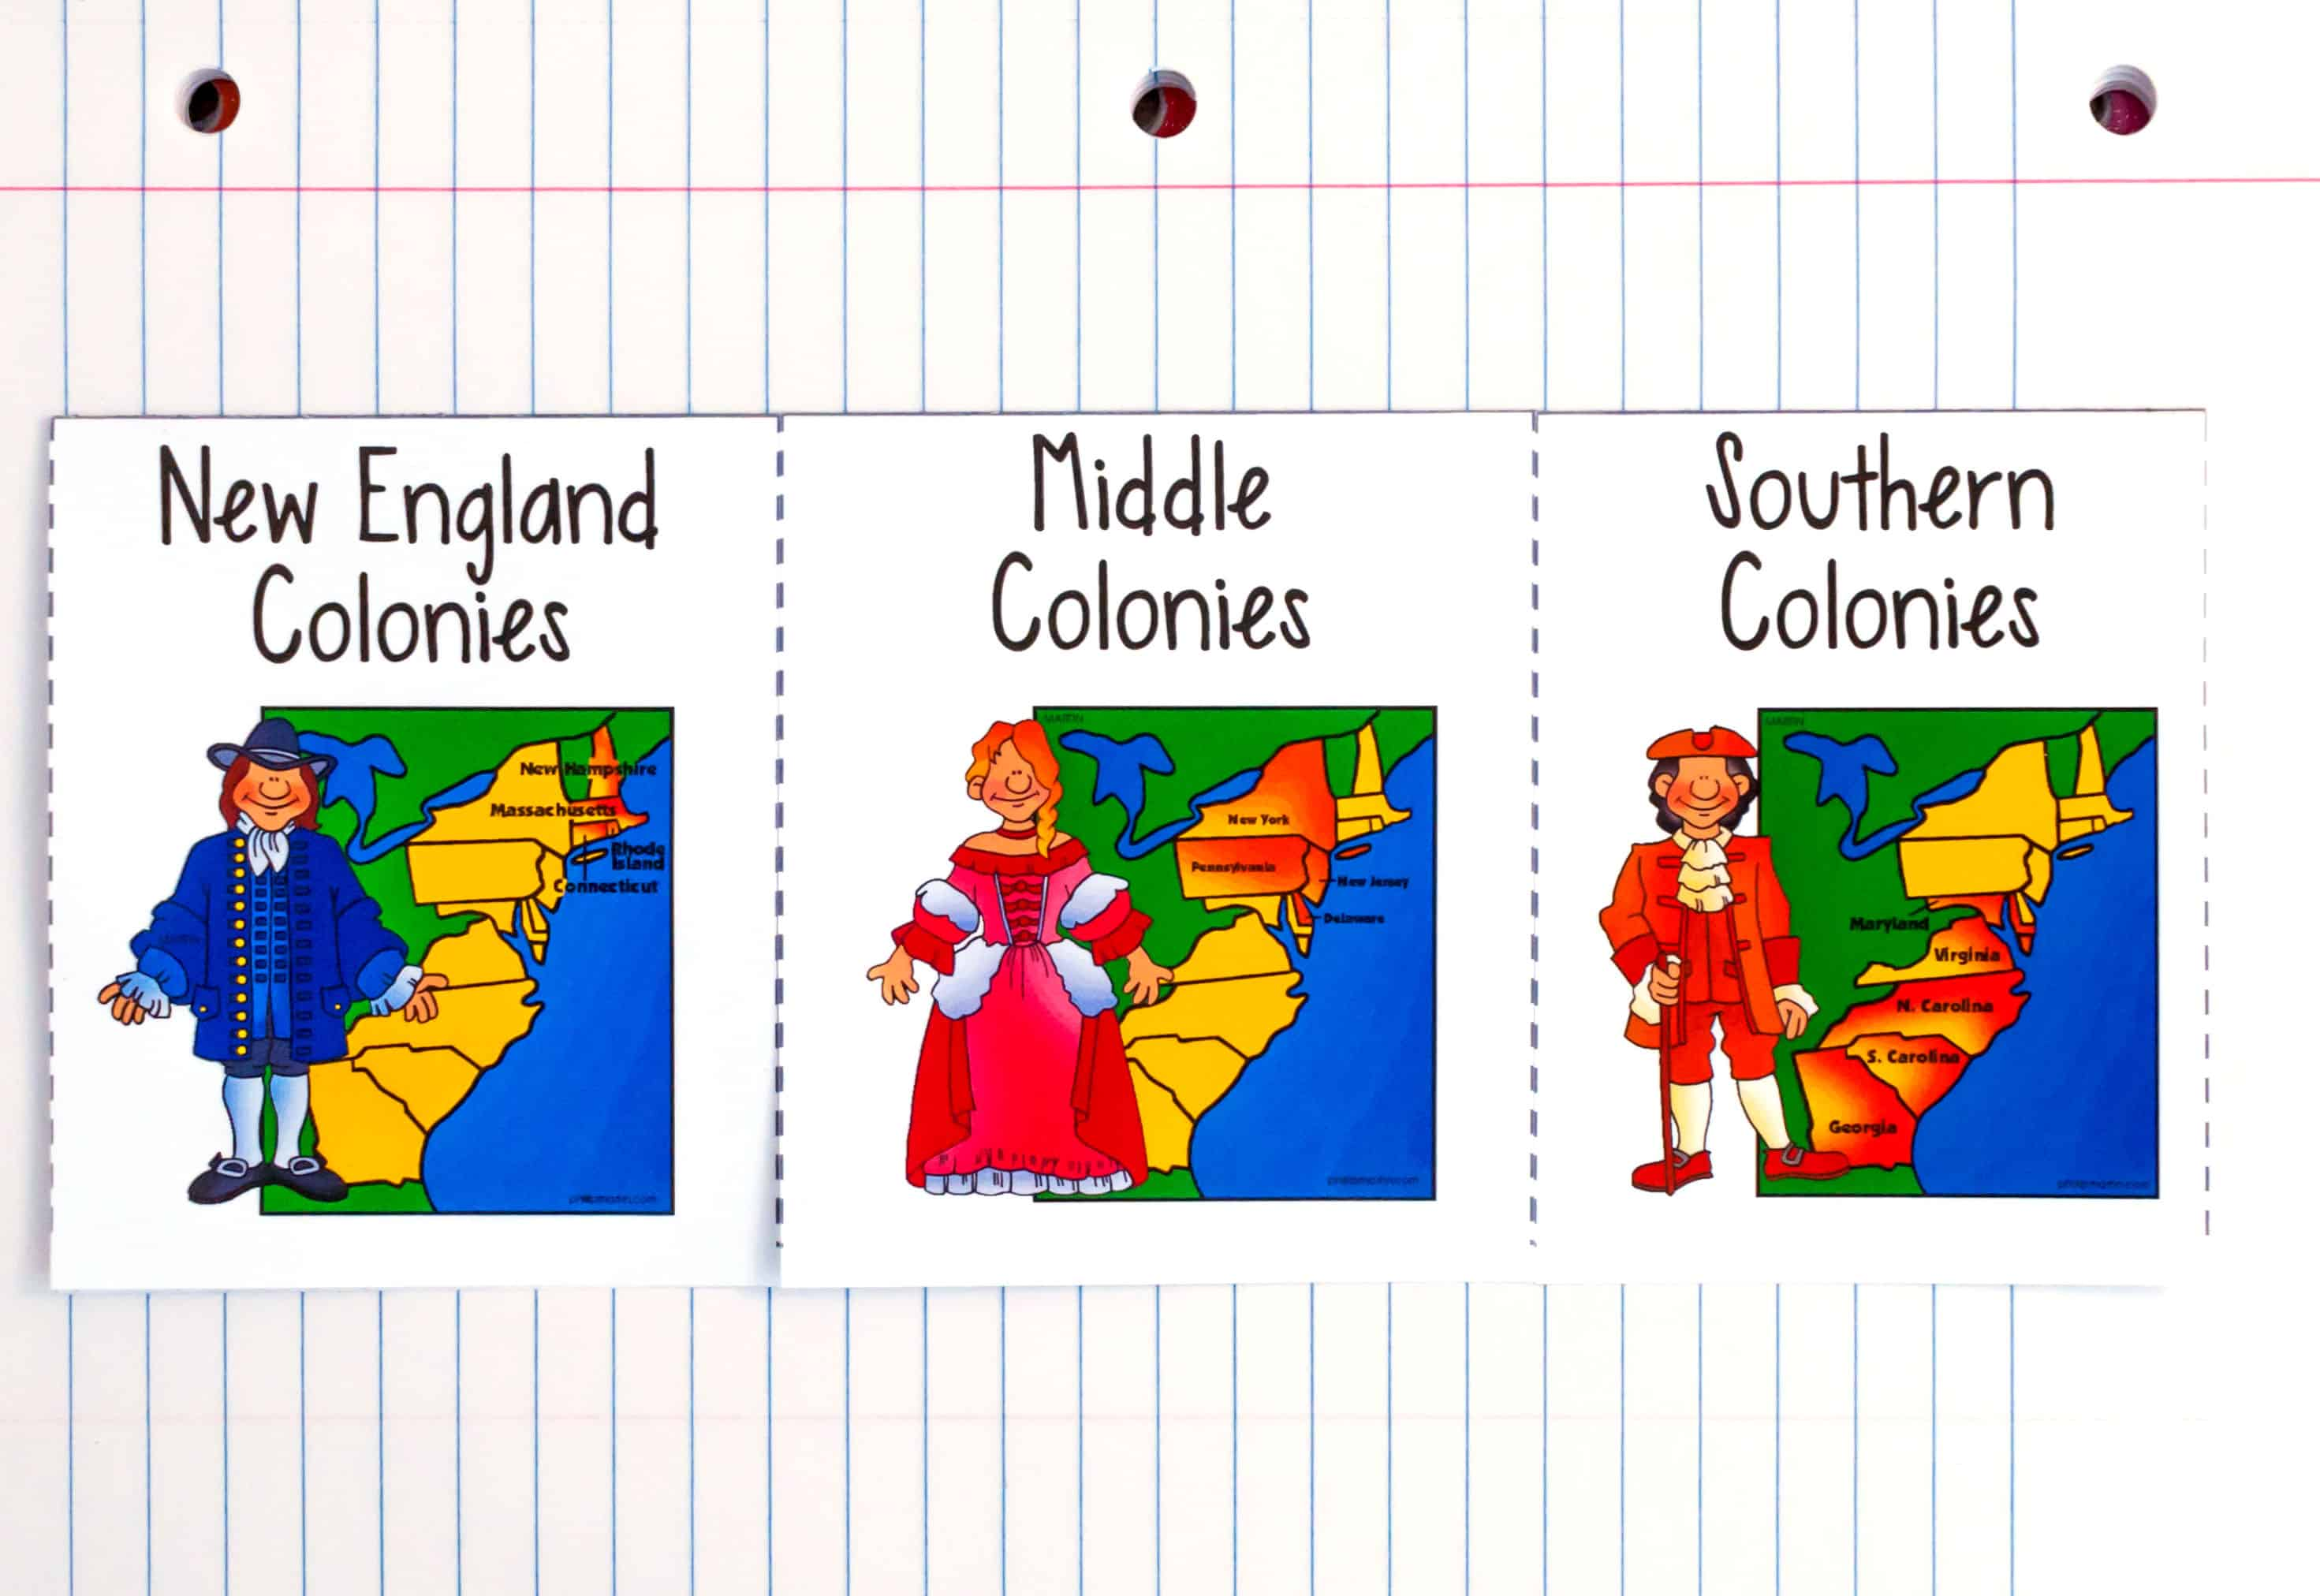 I wanted to make sure my upper elementary students received enough instruction in social studies, so I created a social studies interactive notebook! This resource is jam-packed with social studies content taught in 3rd grade, 4th grade, and 5th grade, and it's full of fun activities for your classroom. Click through to learn how I used this social studies interactive notebook with my students!